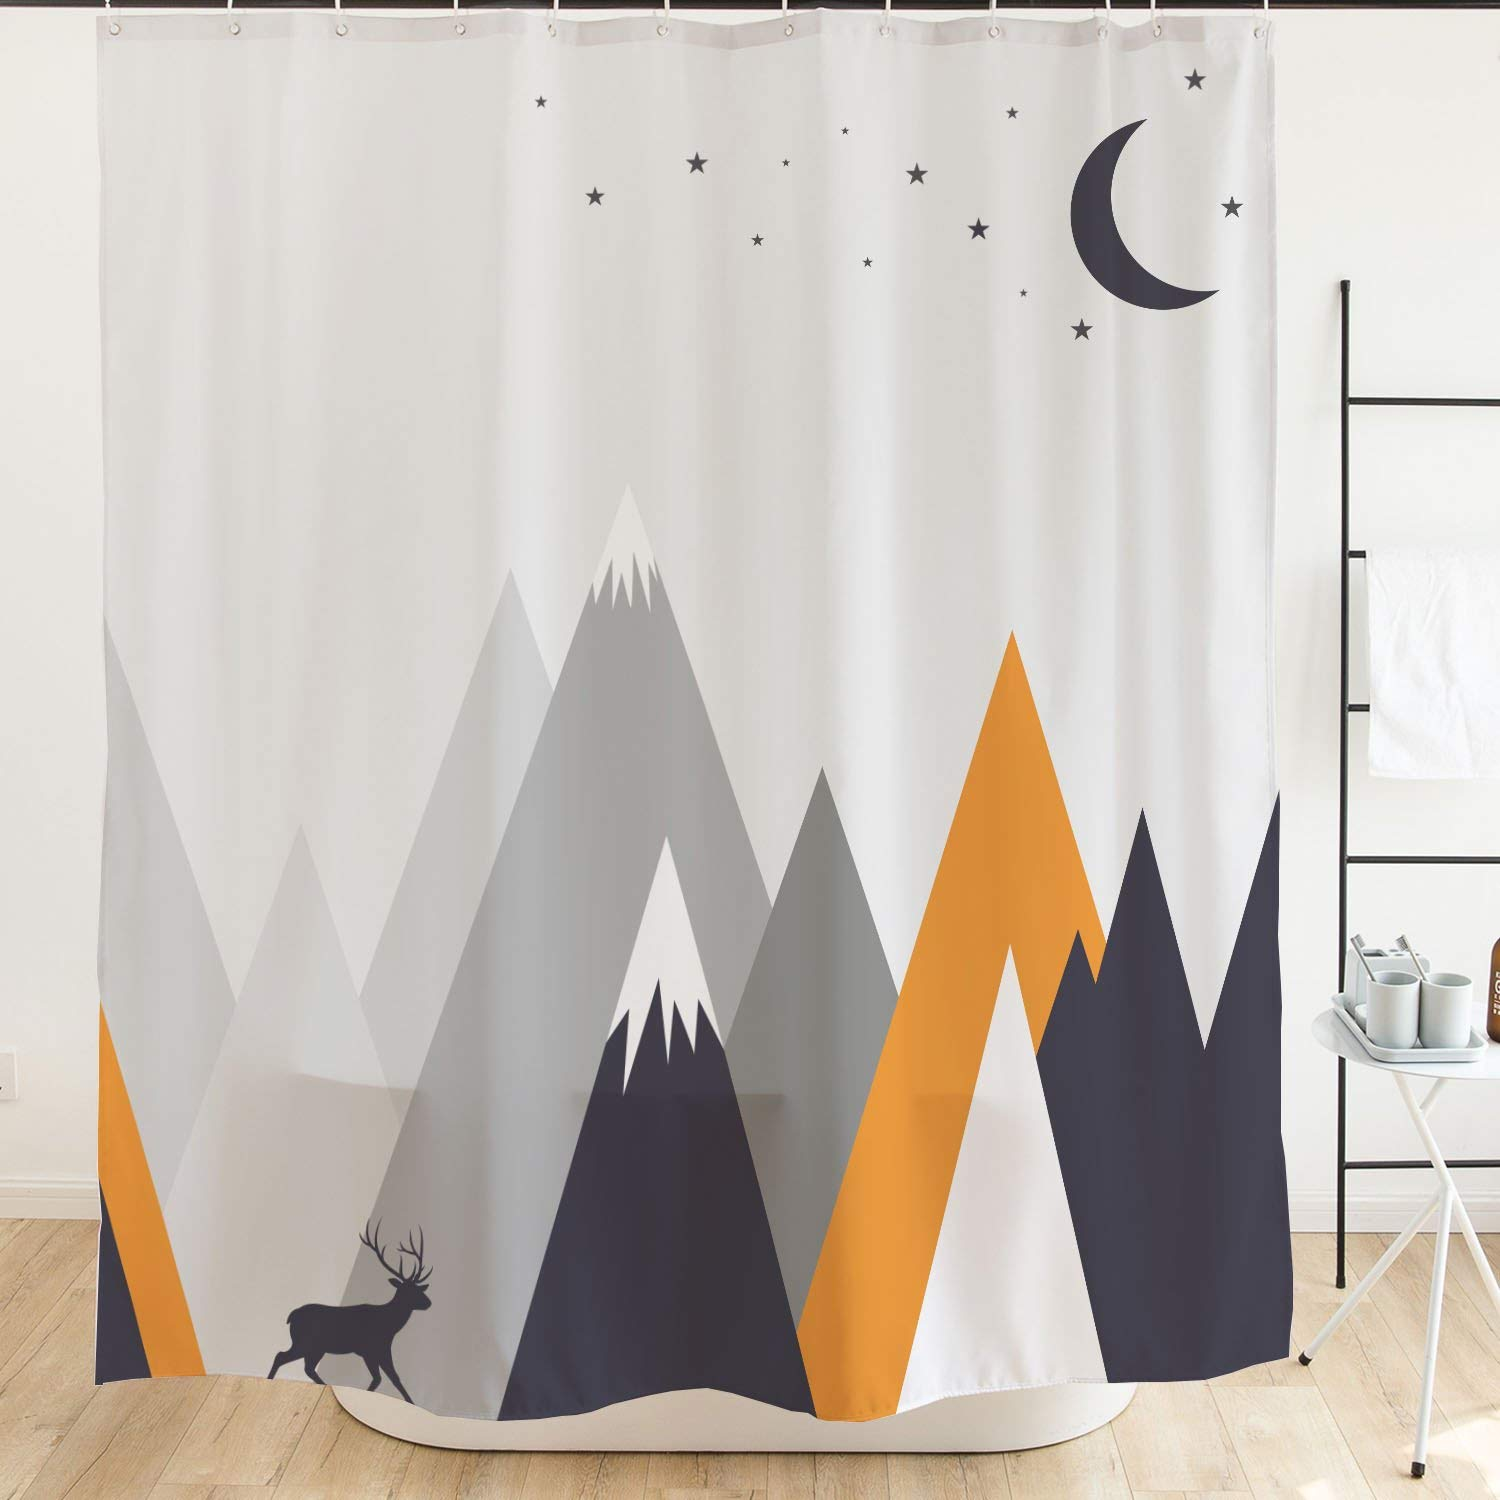 """Elk Shower Curtain Deer Roaming in Mountain Forest Colorful Shower Curtain with Hooks, Waterproof Fabric Shower Curtains for Bathroom Accessories, No Liner Needed, Moon Stars Gray Orange 71""""x 71"""""""